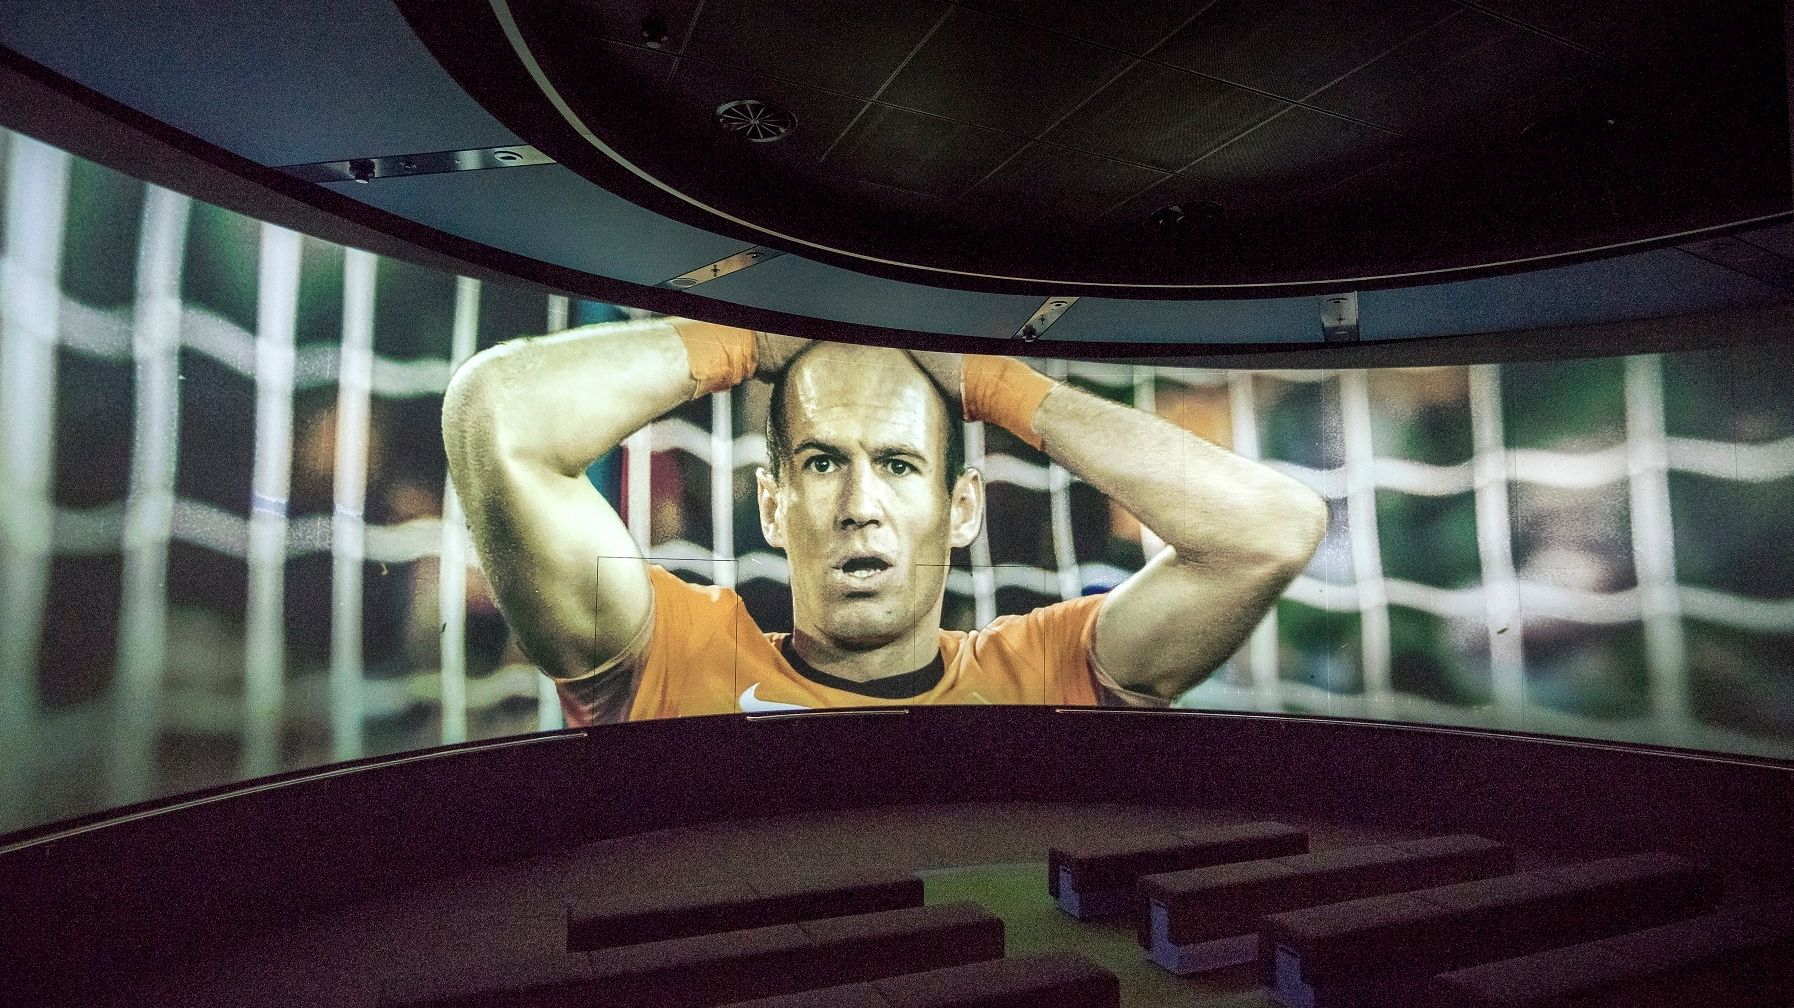 Cinema des FIFA World Football Museum